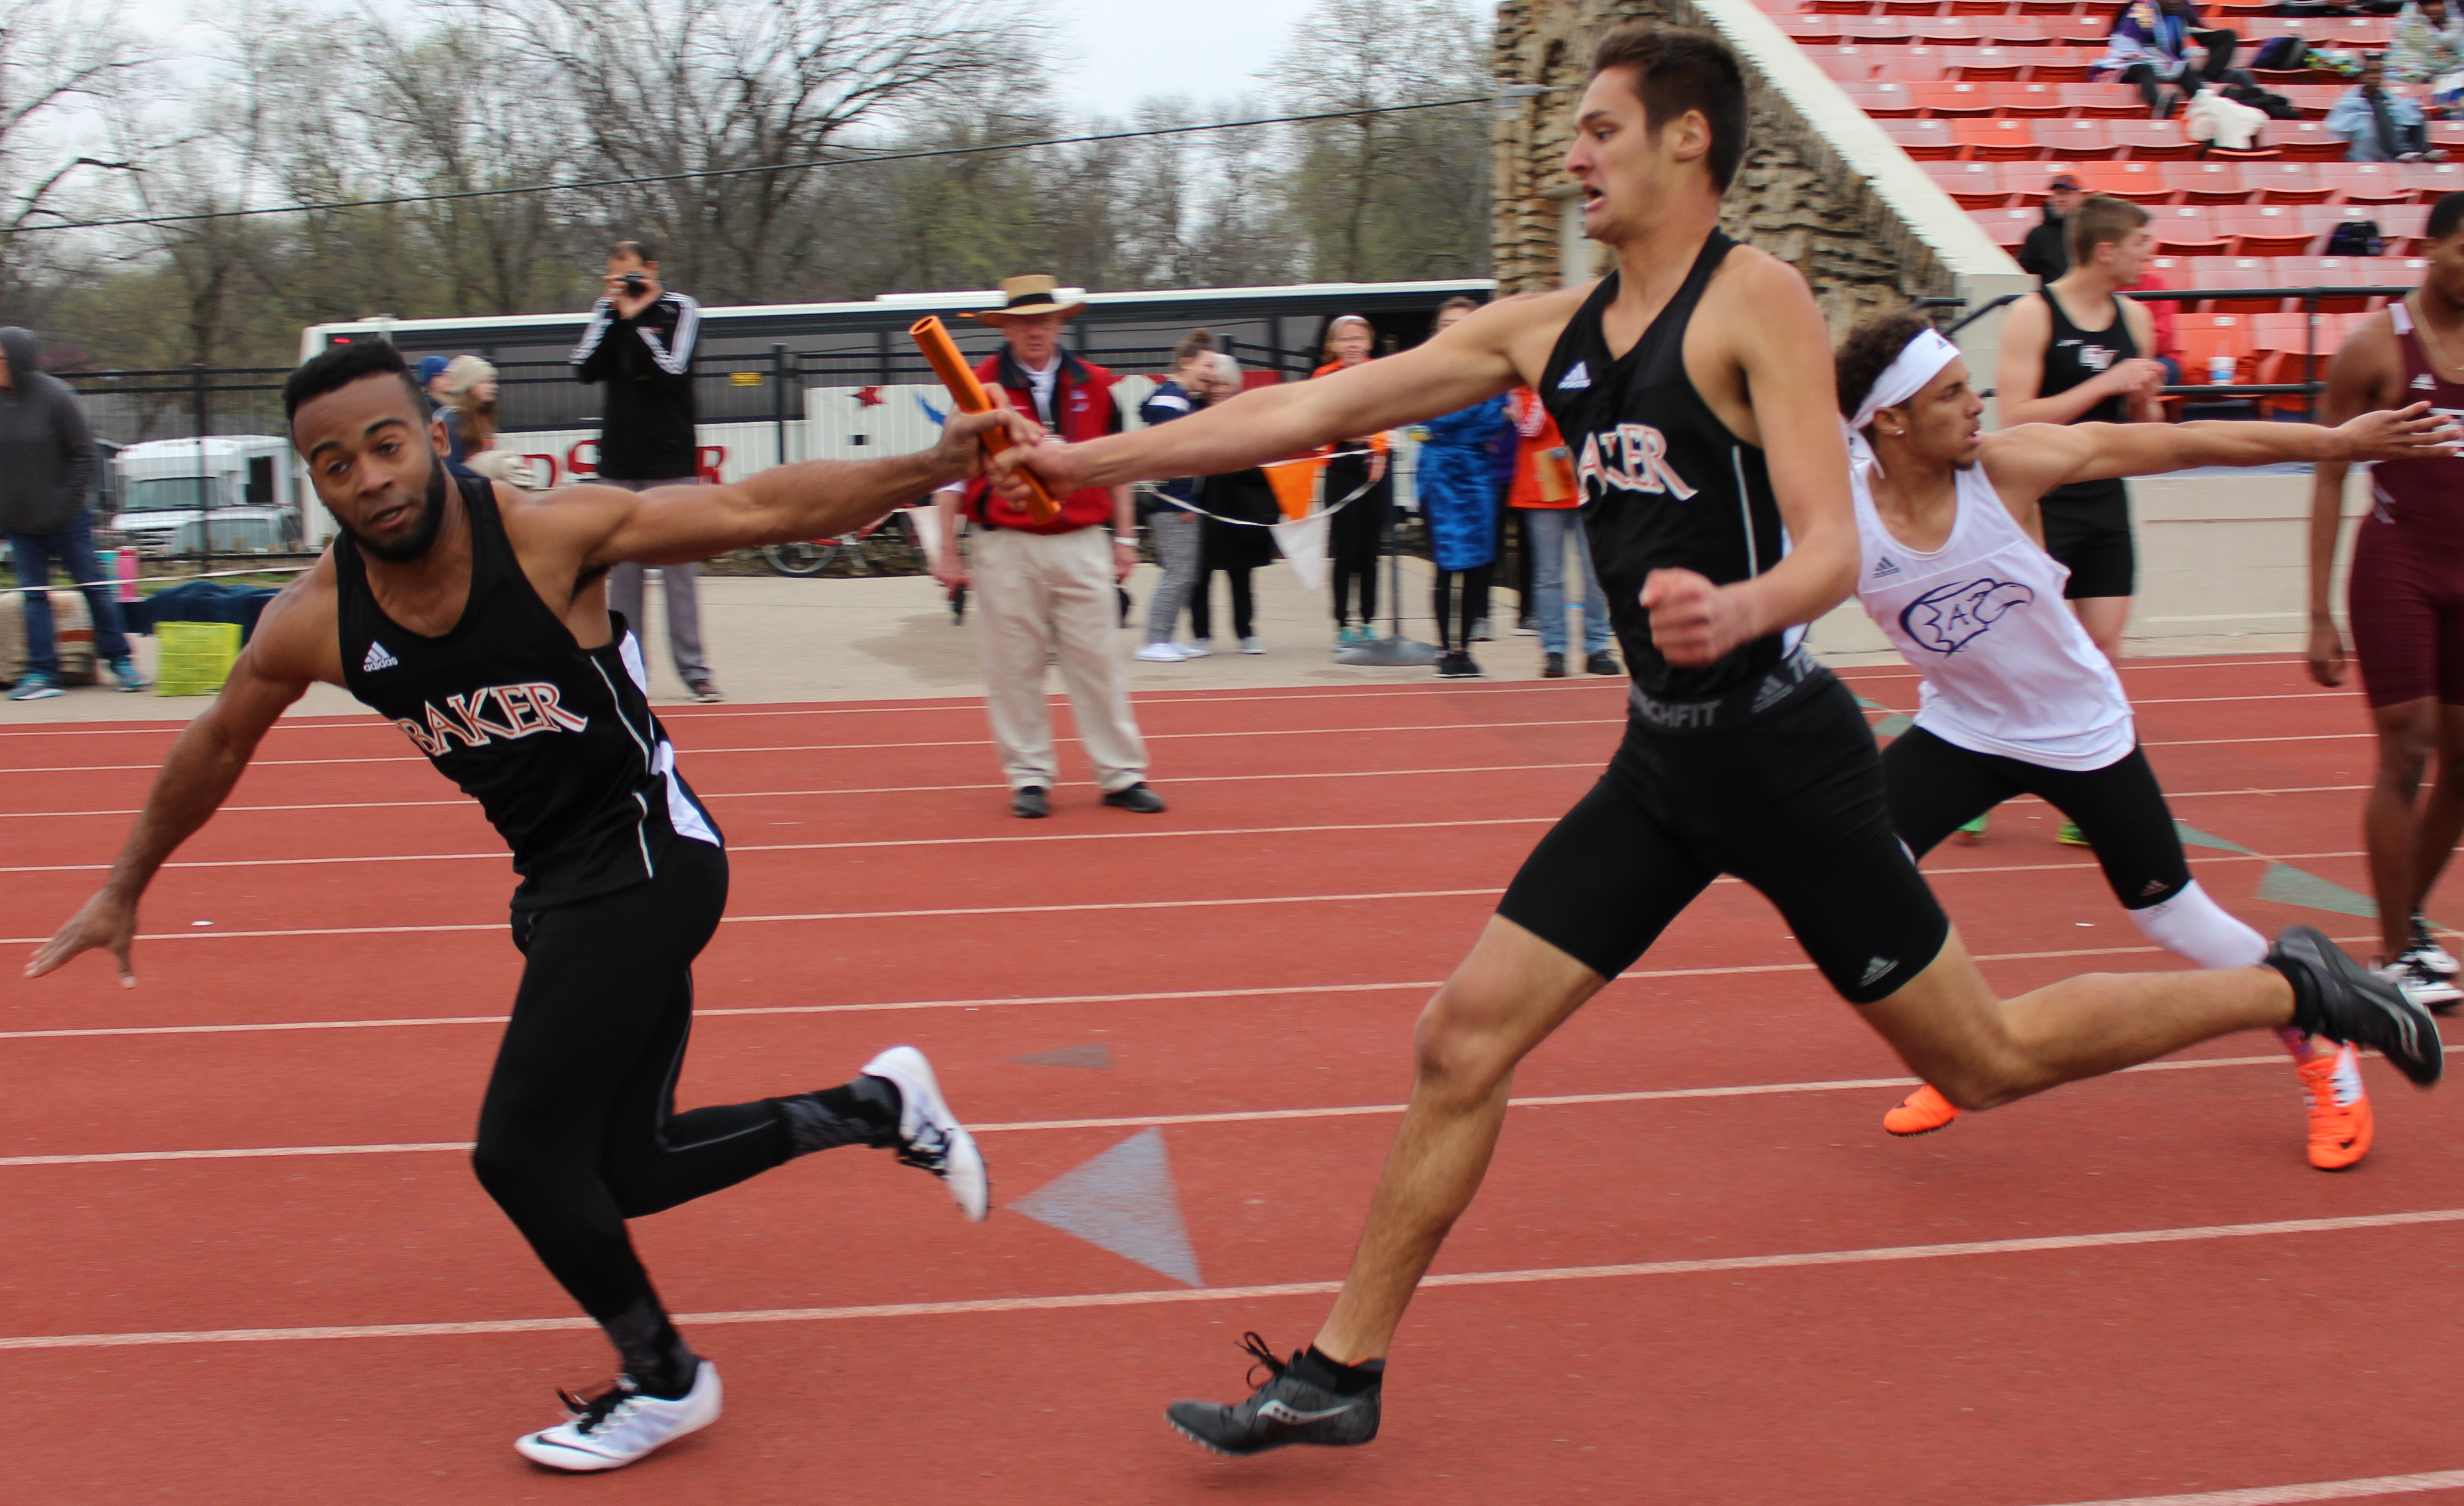 Freshman Danny Griese passes the baton to senior Avery Parker to gain fourth place overall in the men's 1,600-meter relay with a time of 3:30.28. Photo by Marilee Neutel.